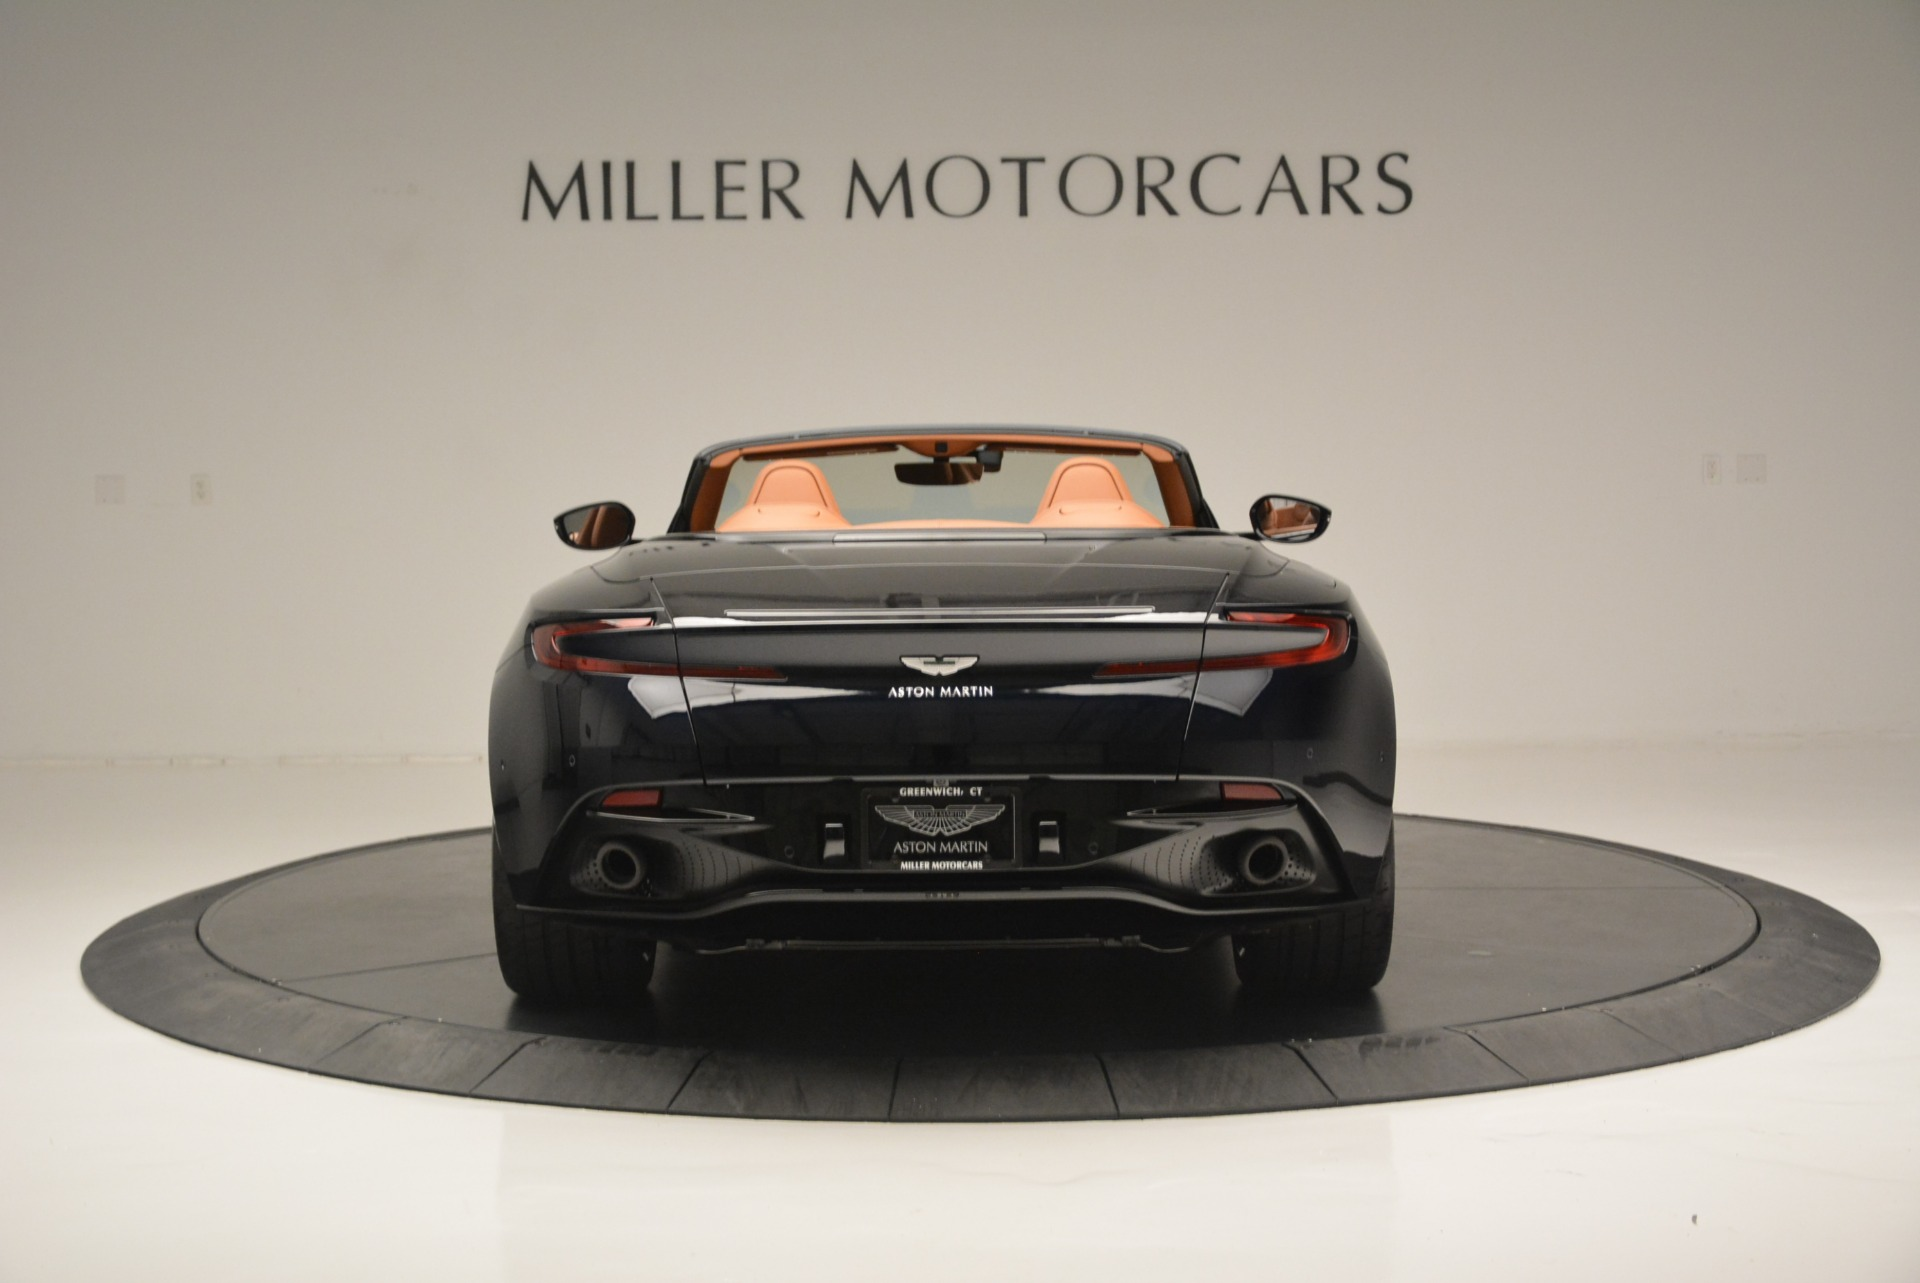 New 2019 Aston Martin DB11 Volante Volante For Sale In Greenwich, CT 2450_p6